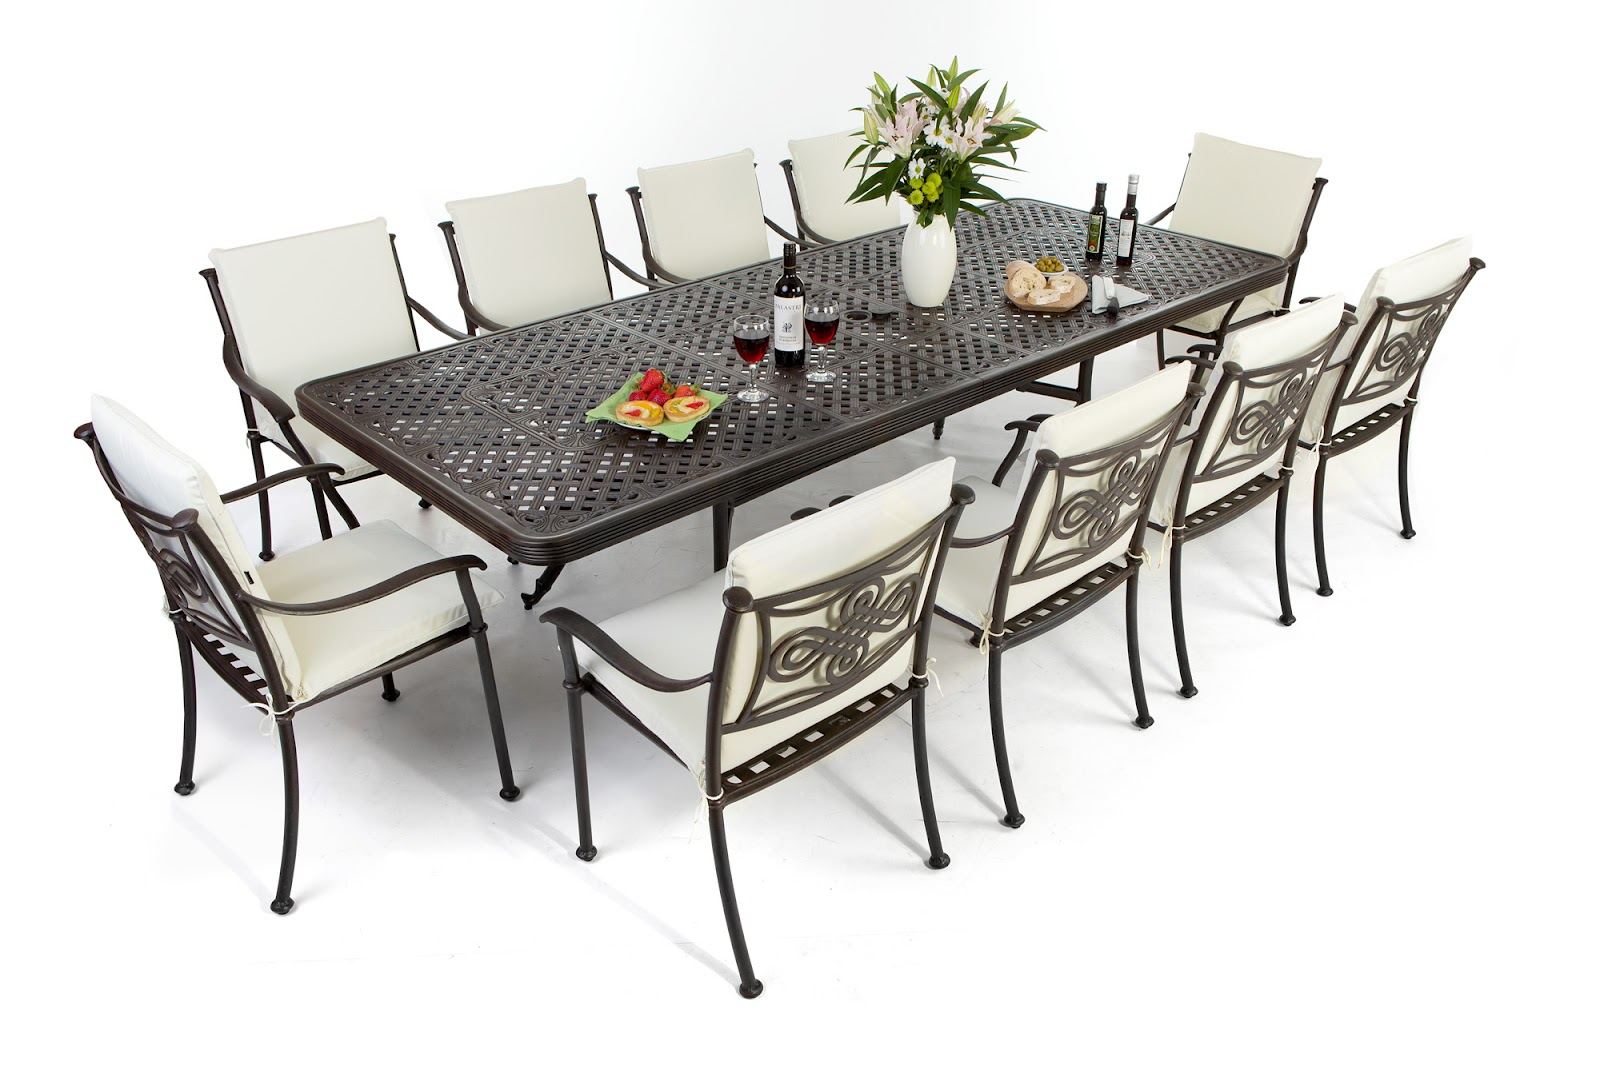 Outdoor wicker furniture dining sets